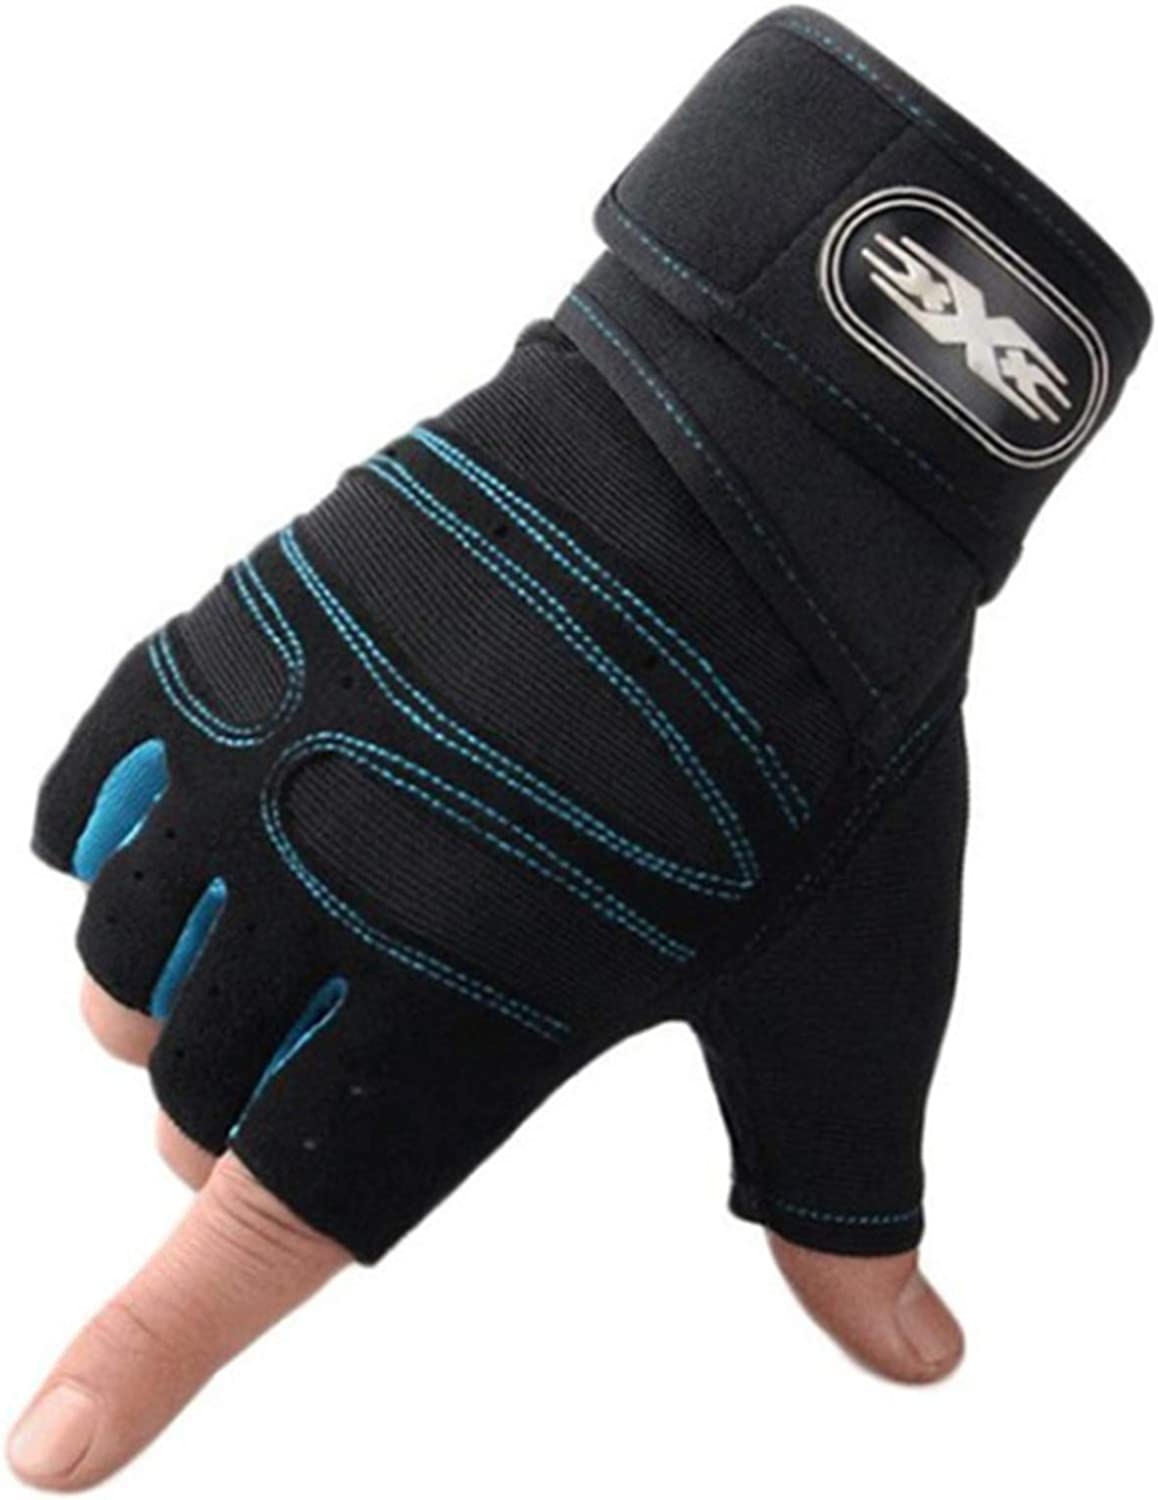 Unisex Gloves for Workout Fitness Half Finger Glove Anti-Slip Gym Bodybuilding Mittens for Adults